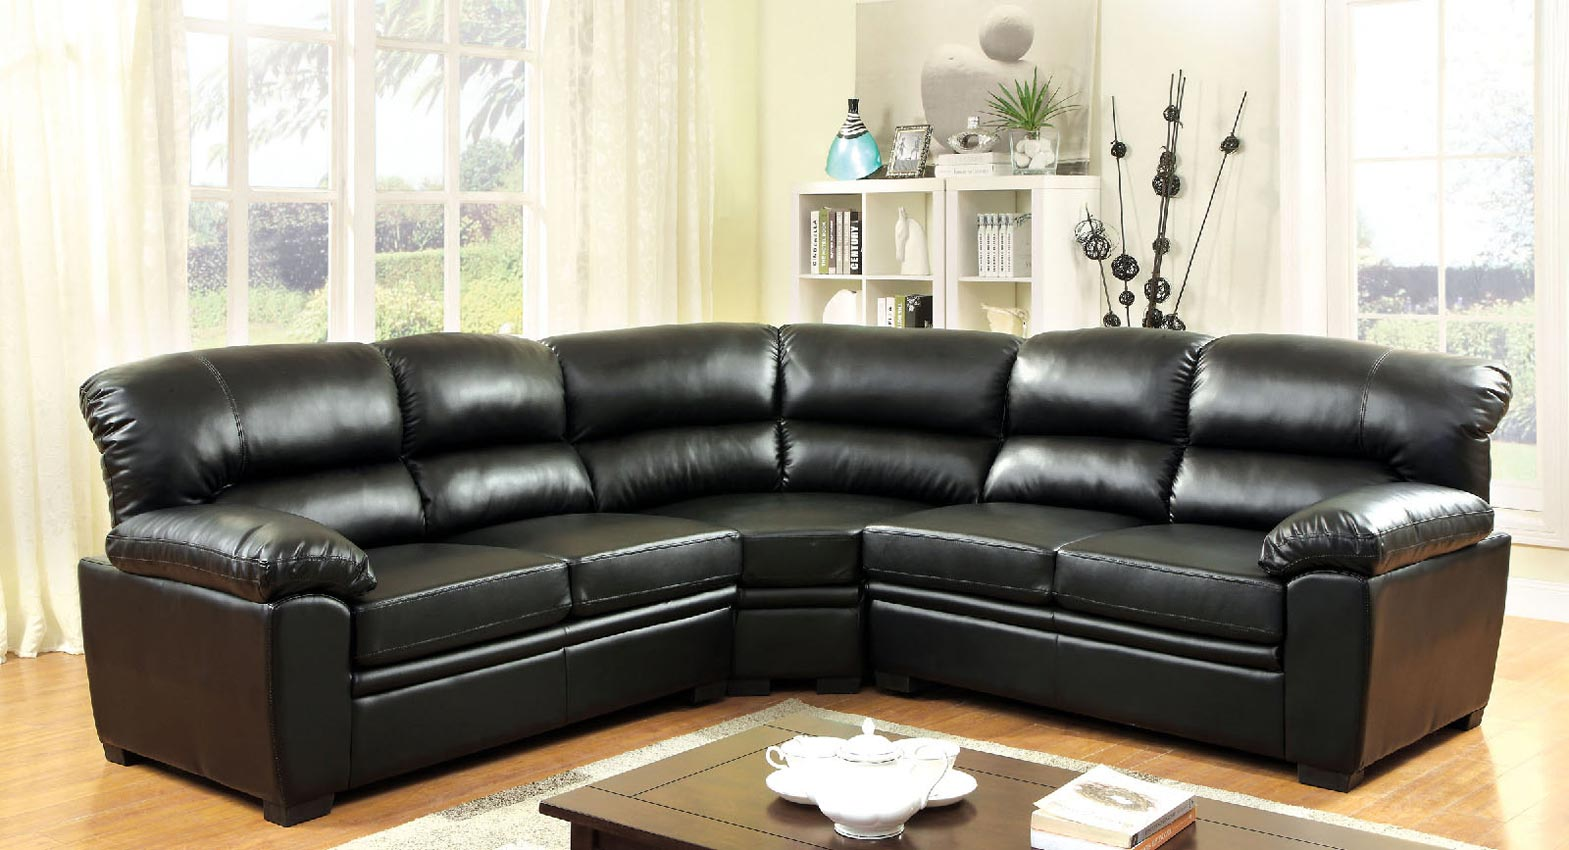 Black Leather Sectional Sofa Set